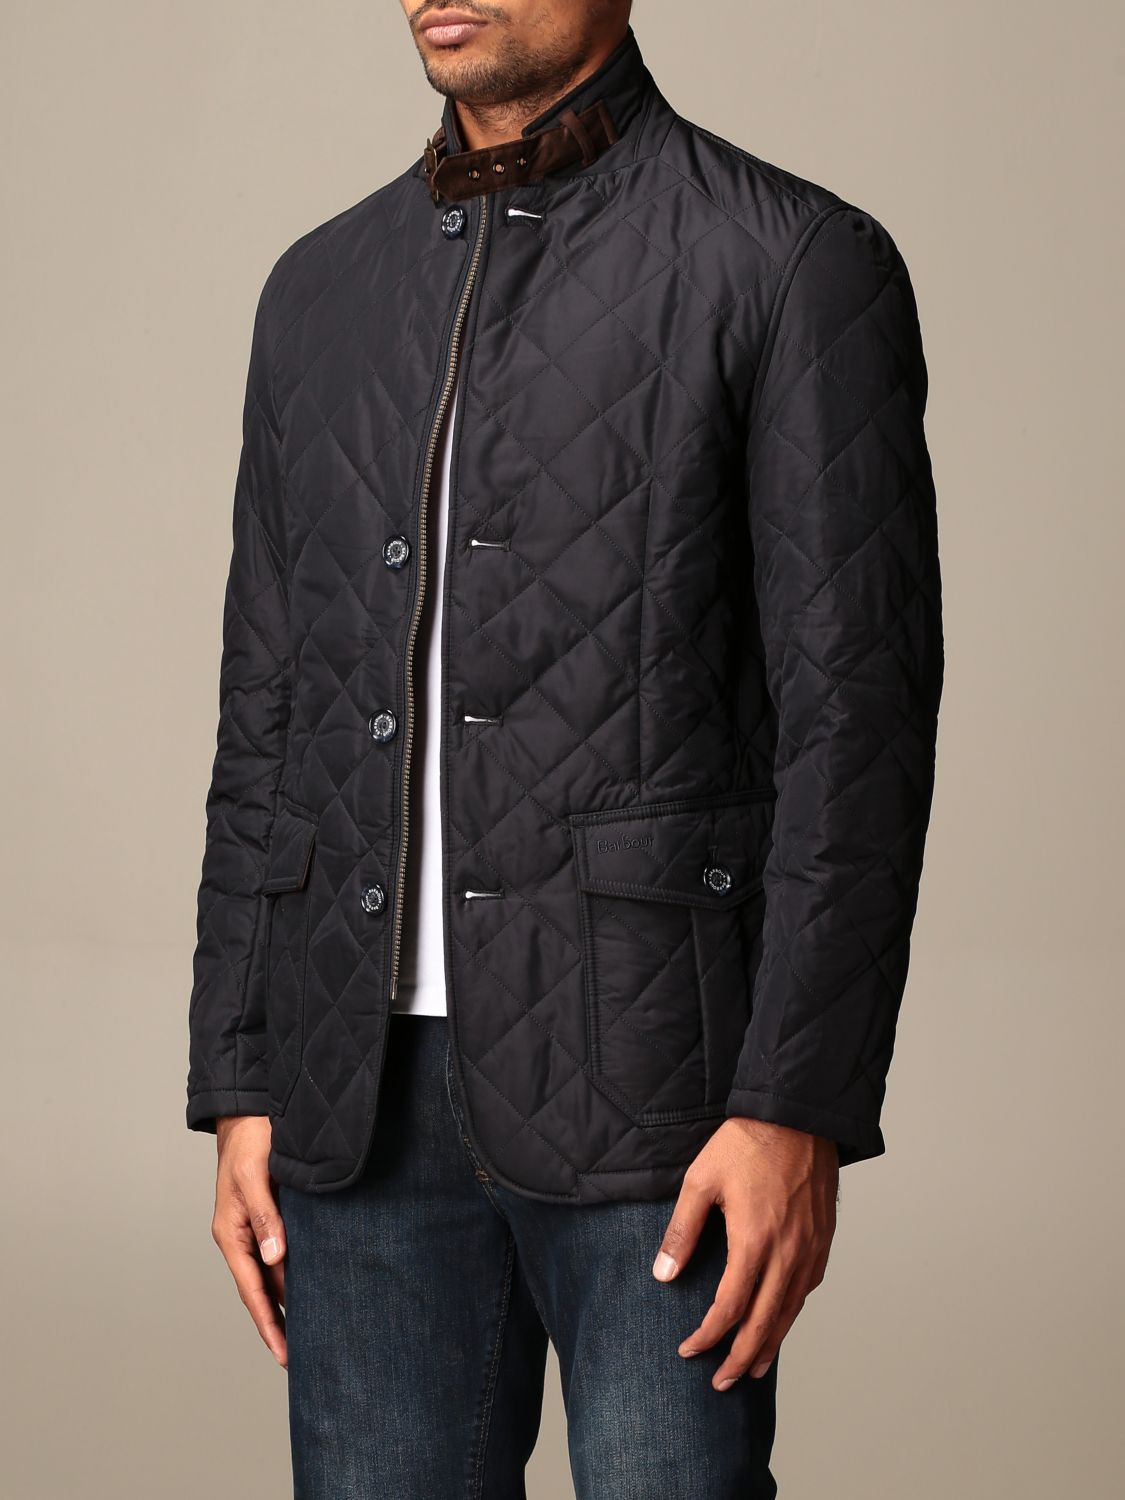 Jacket Barbour: Classic Barbour diamond quilted jacket blue 3